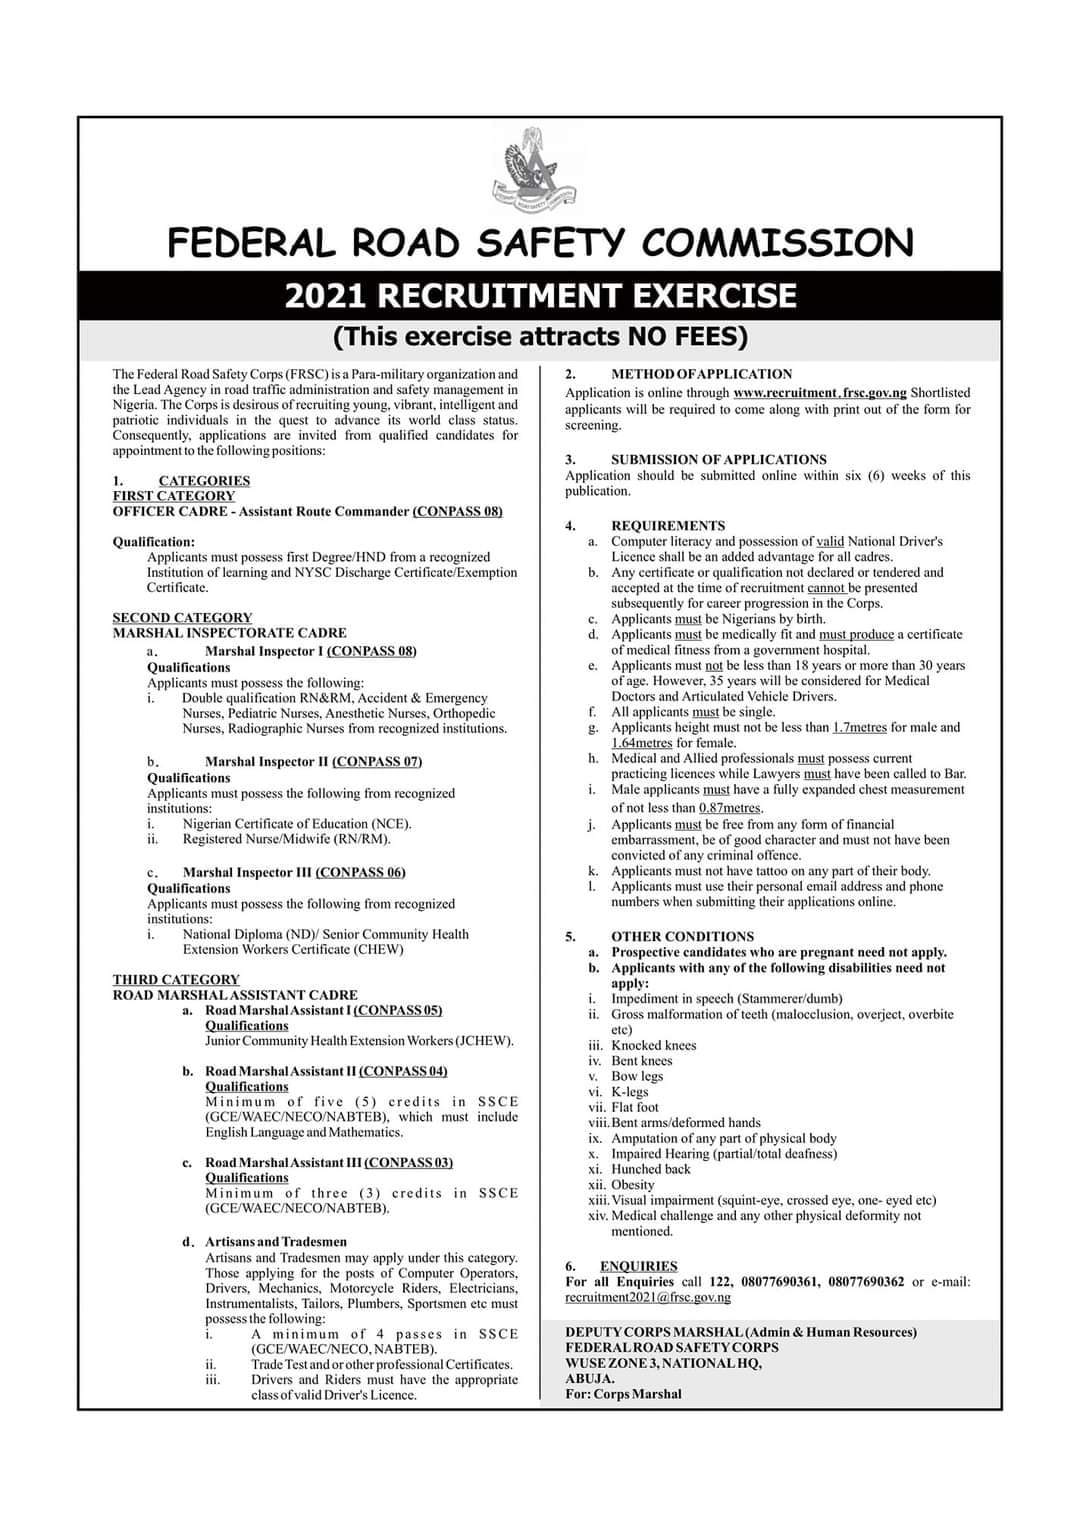 FRSC Recruitment Exercise Guidelines 2021/2022 [Free of Charge]